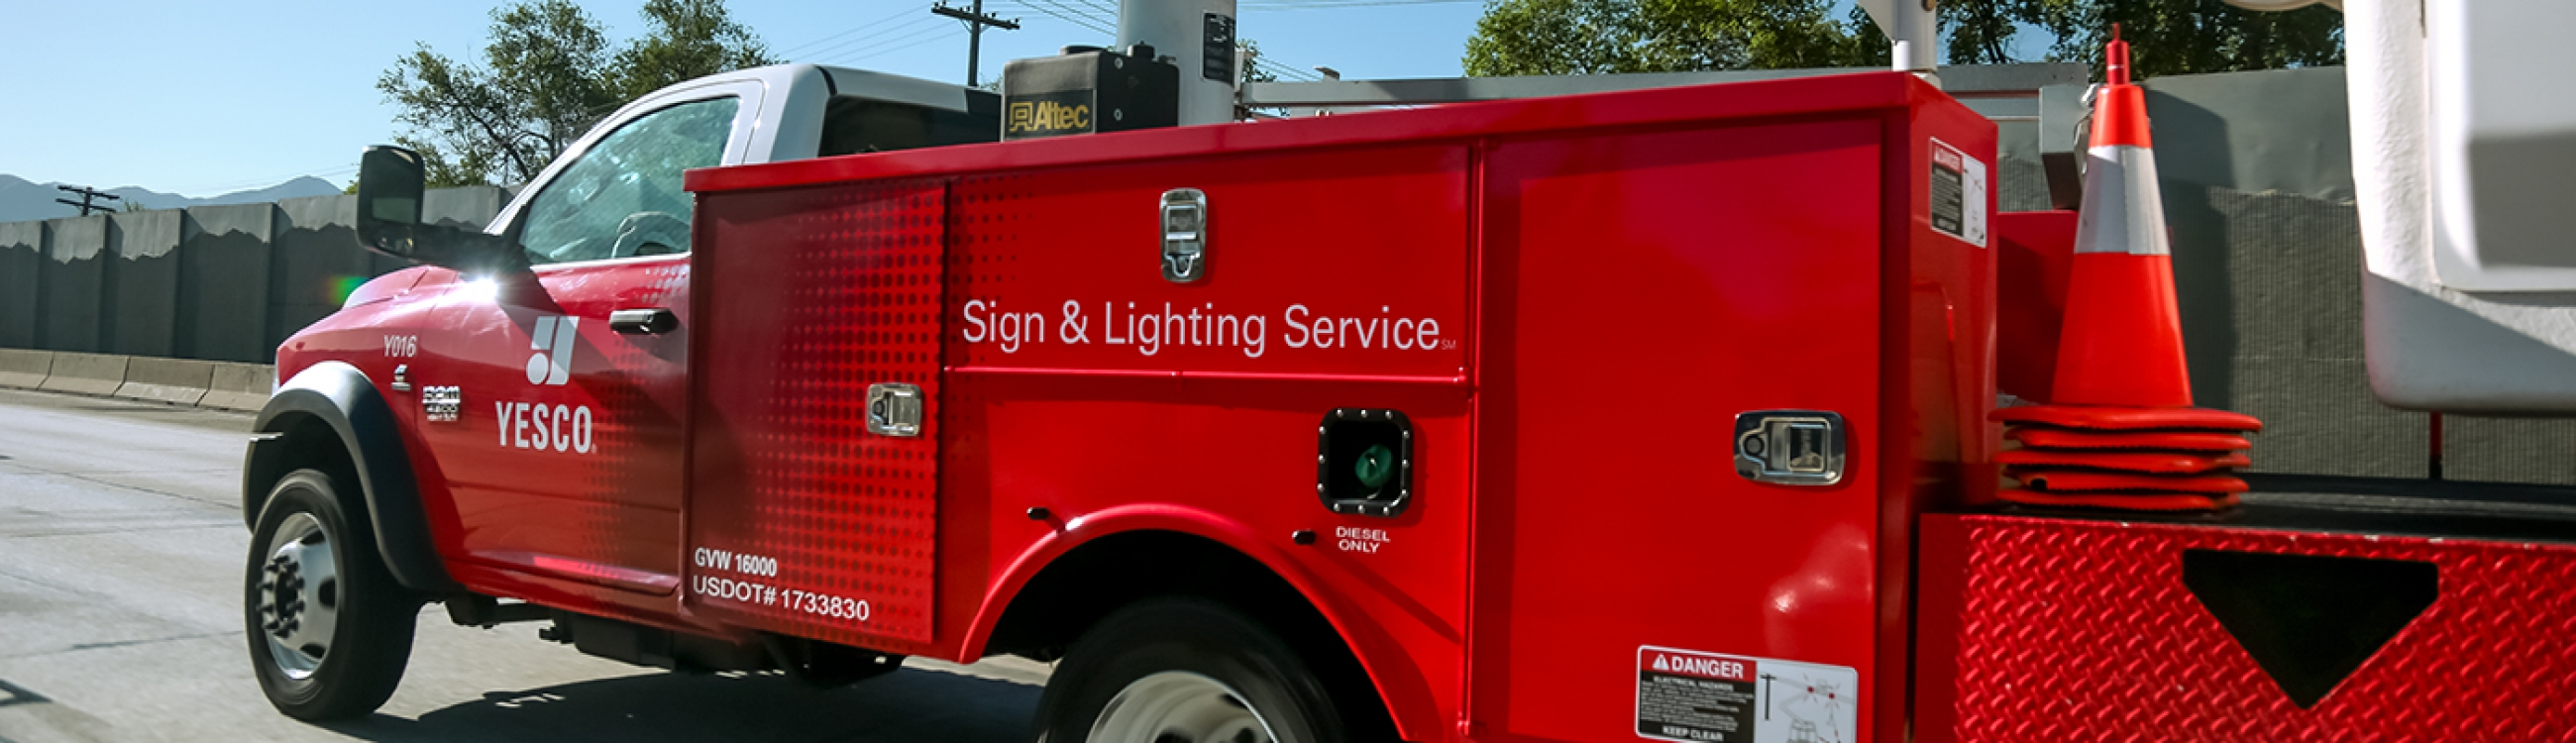 Lighting u0026 Sign Company Serving Lafayette LA and Surrounding Areas | YESCO & Lighting u0026 Sign Company Serving Lafayette LA and Surrounding Areas ...